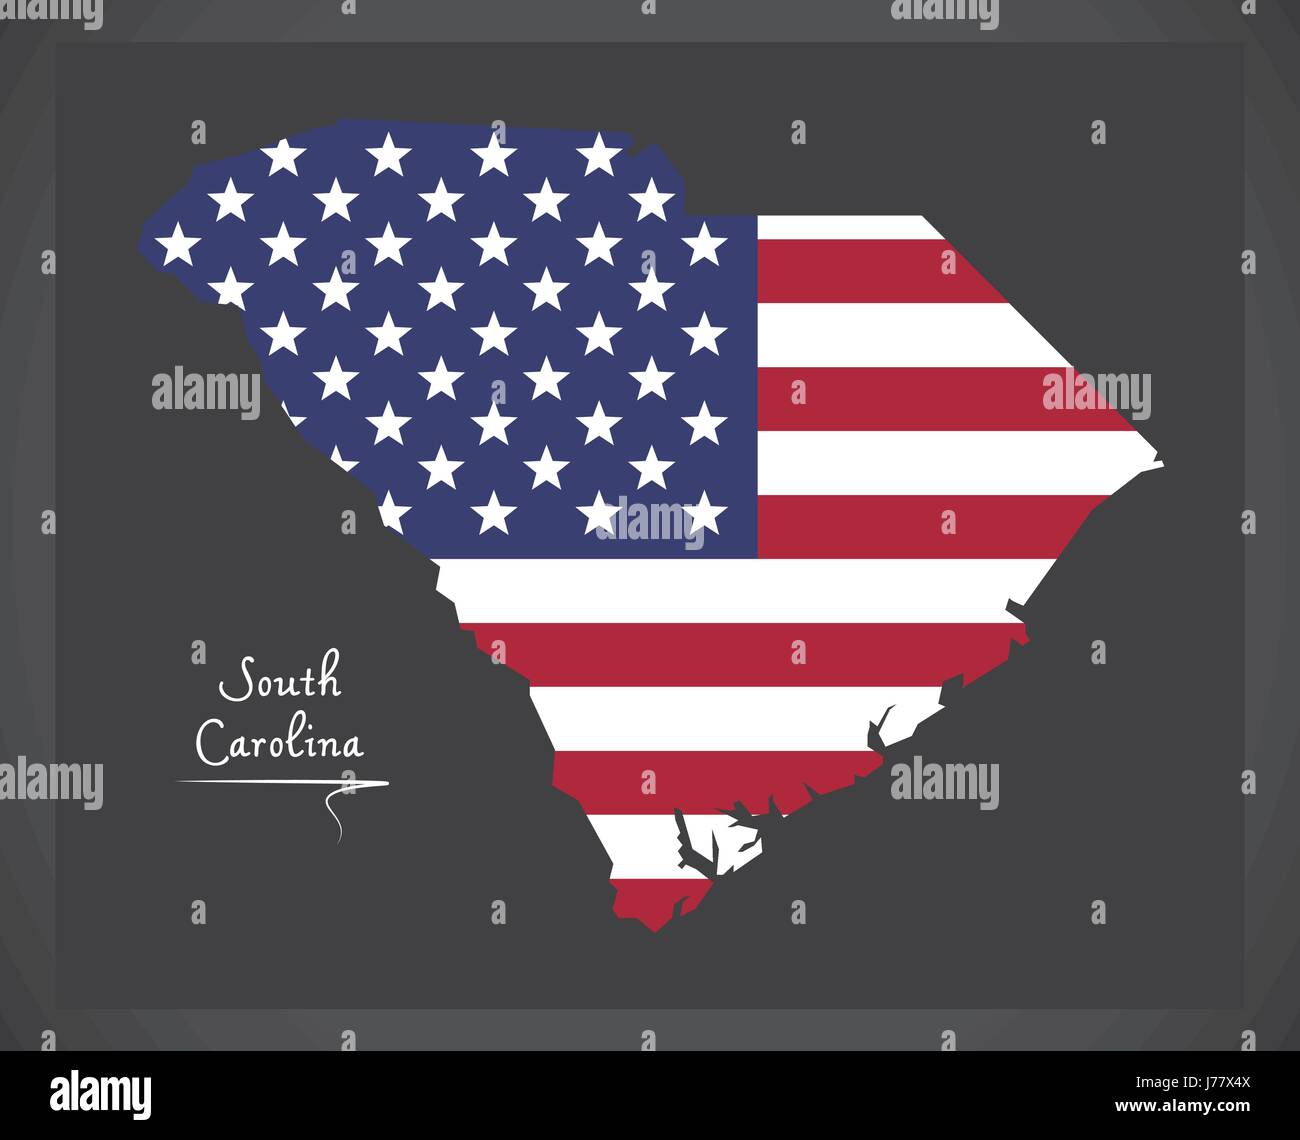 South Carolina map with American national flag illustration Stock